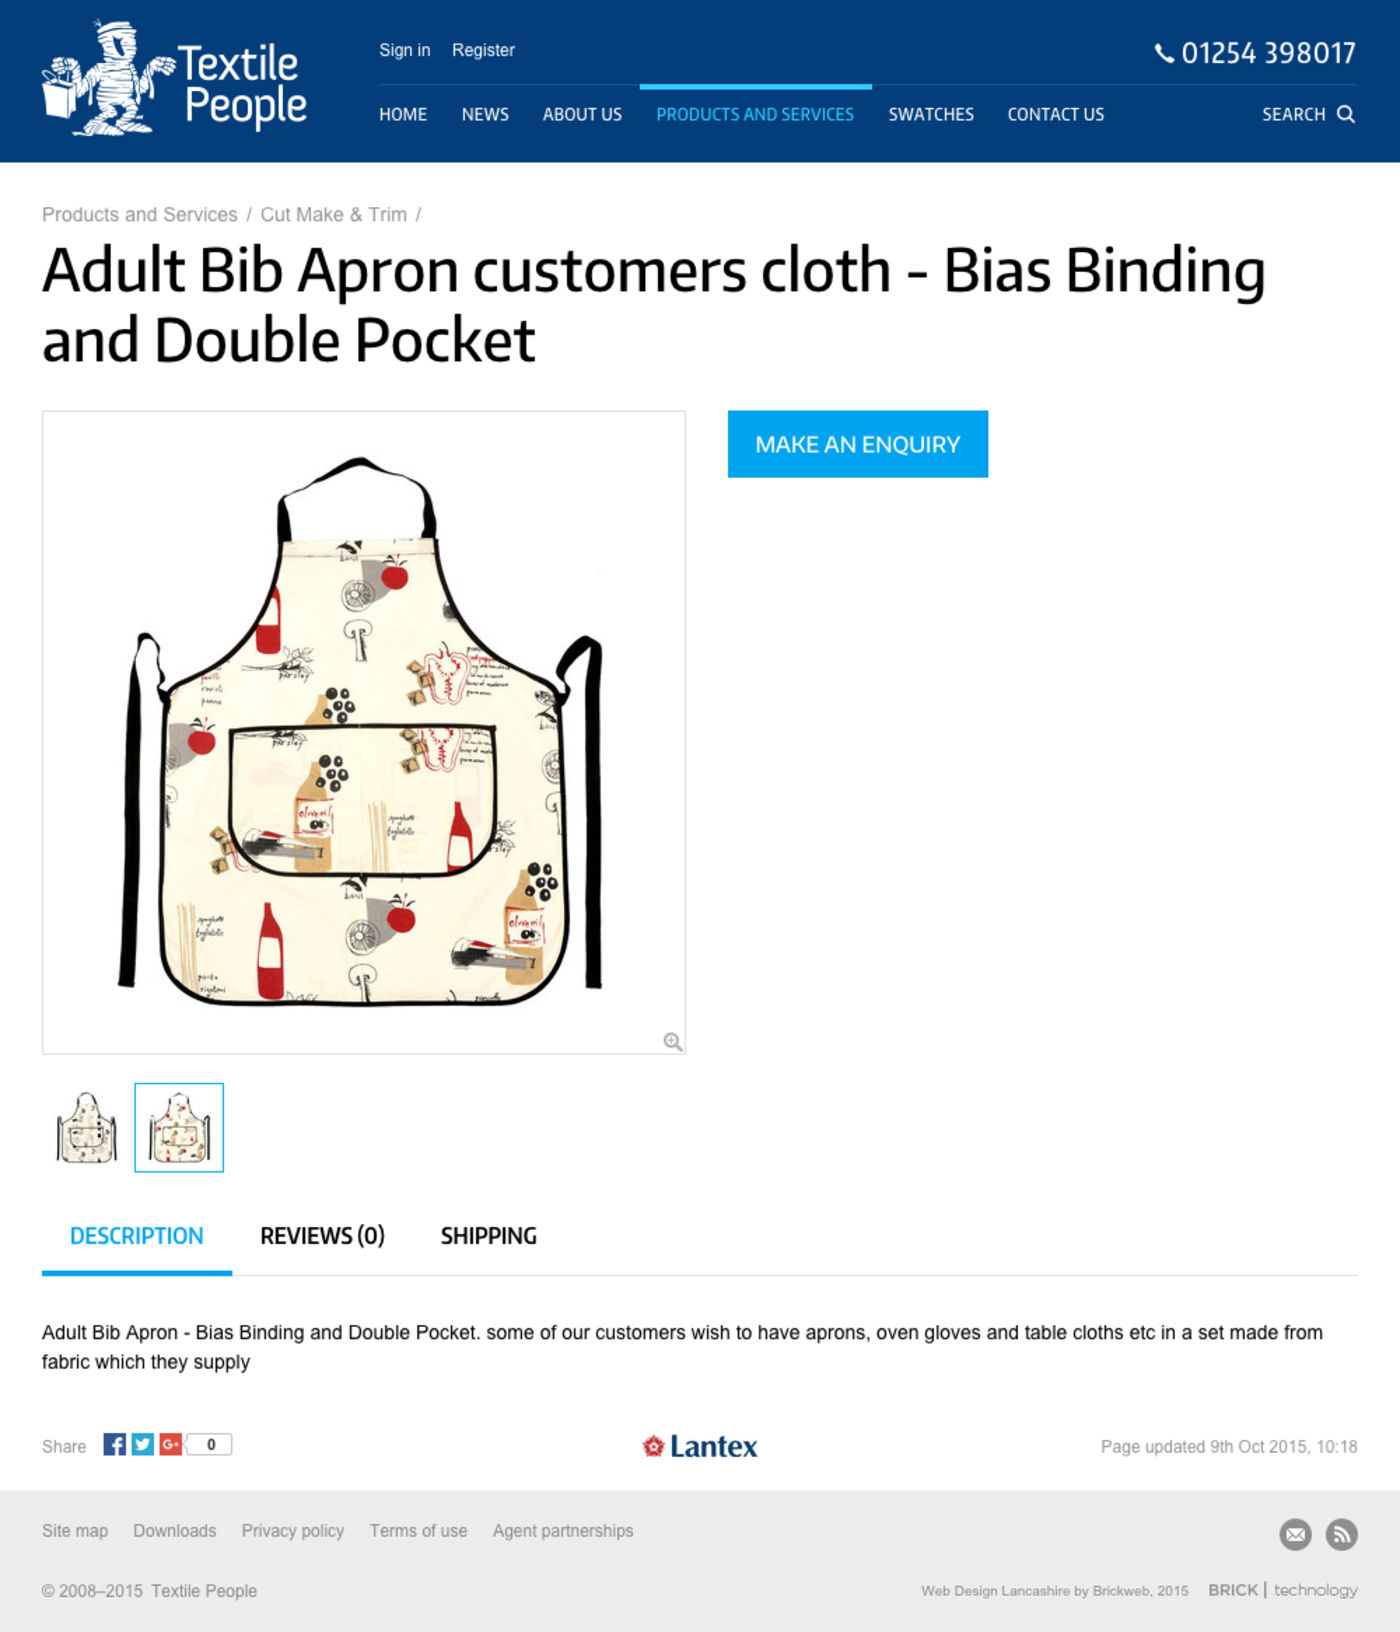 Textile People Product Apron